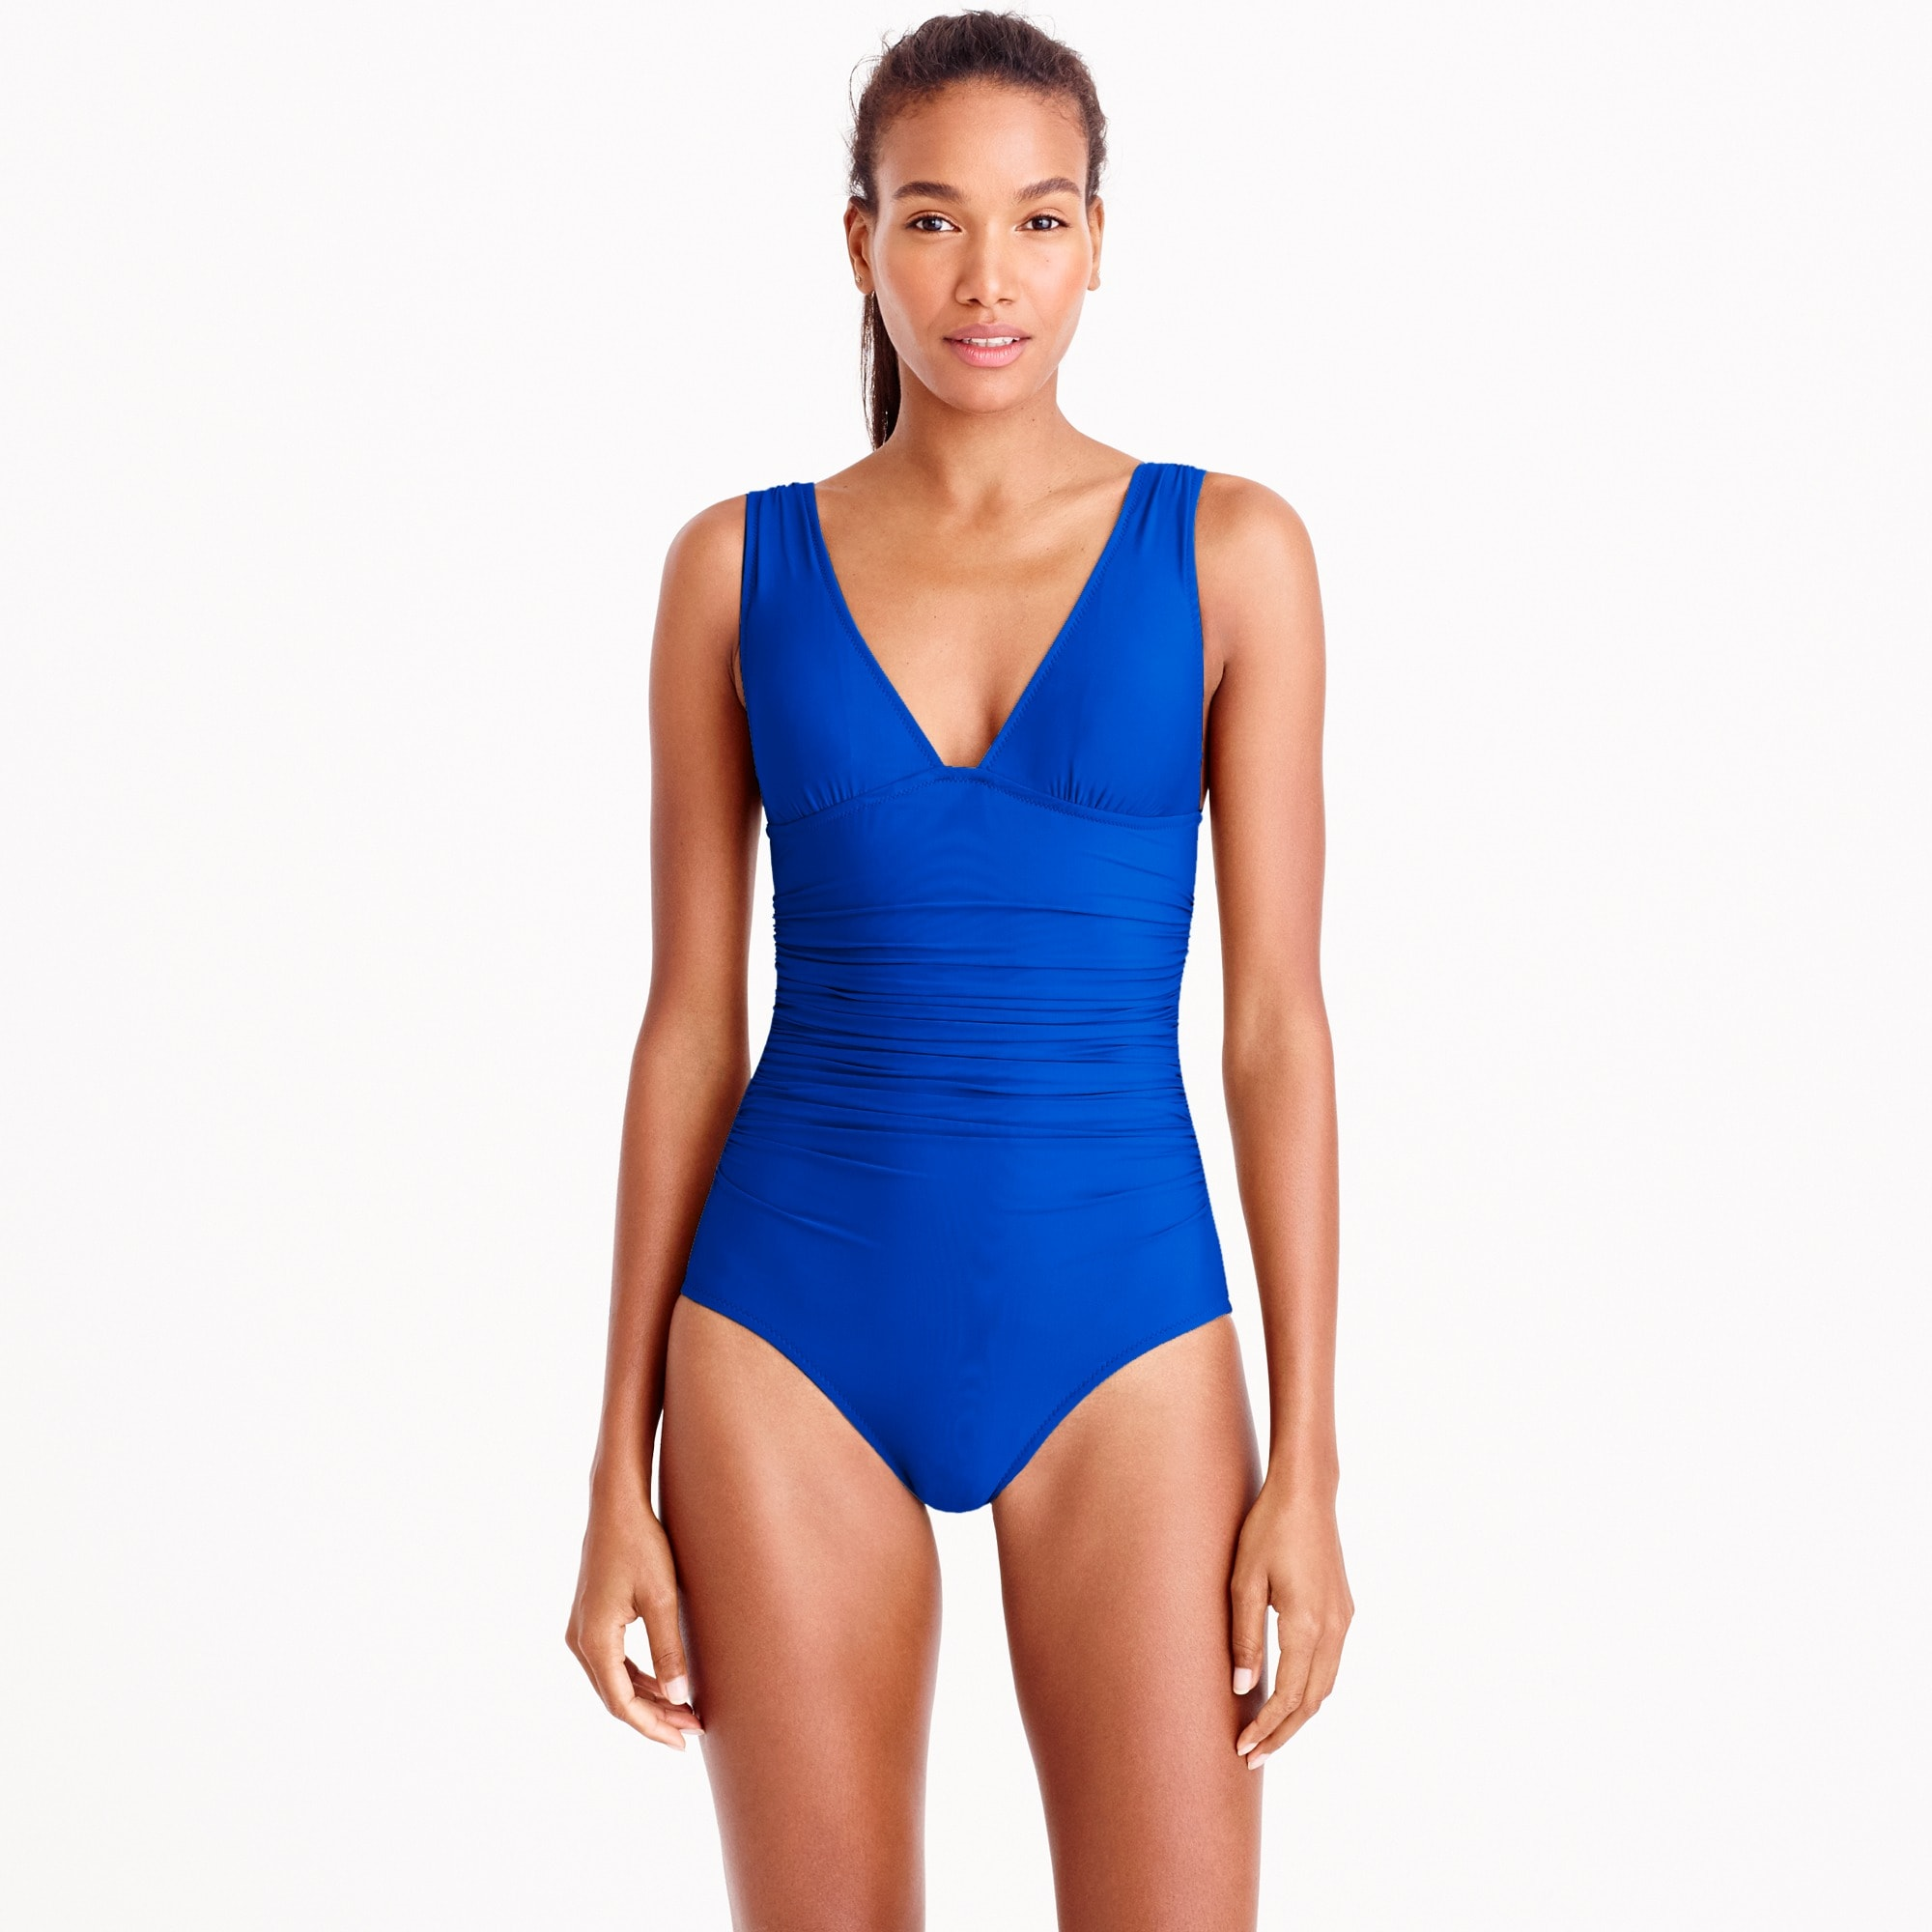 Image 1 for D-cup ruched femme one-piece swimsuit